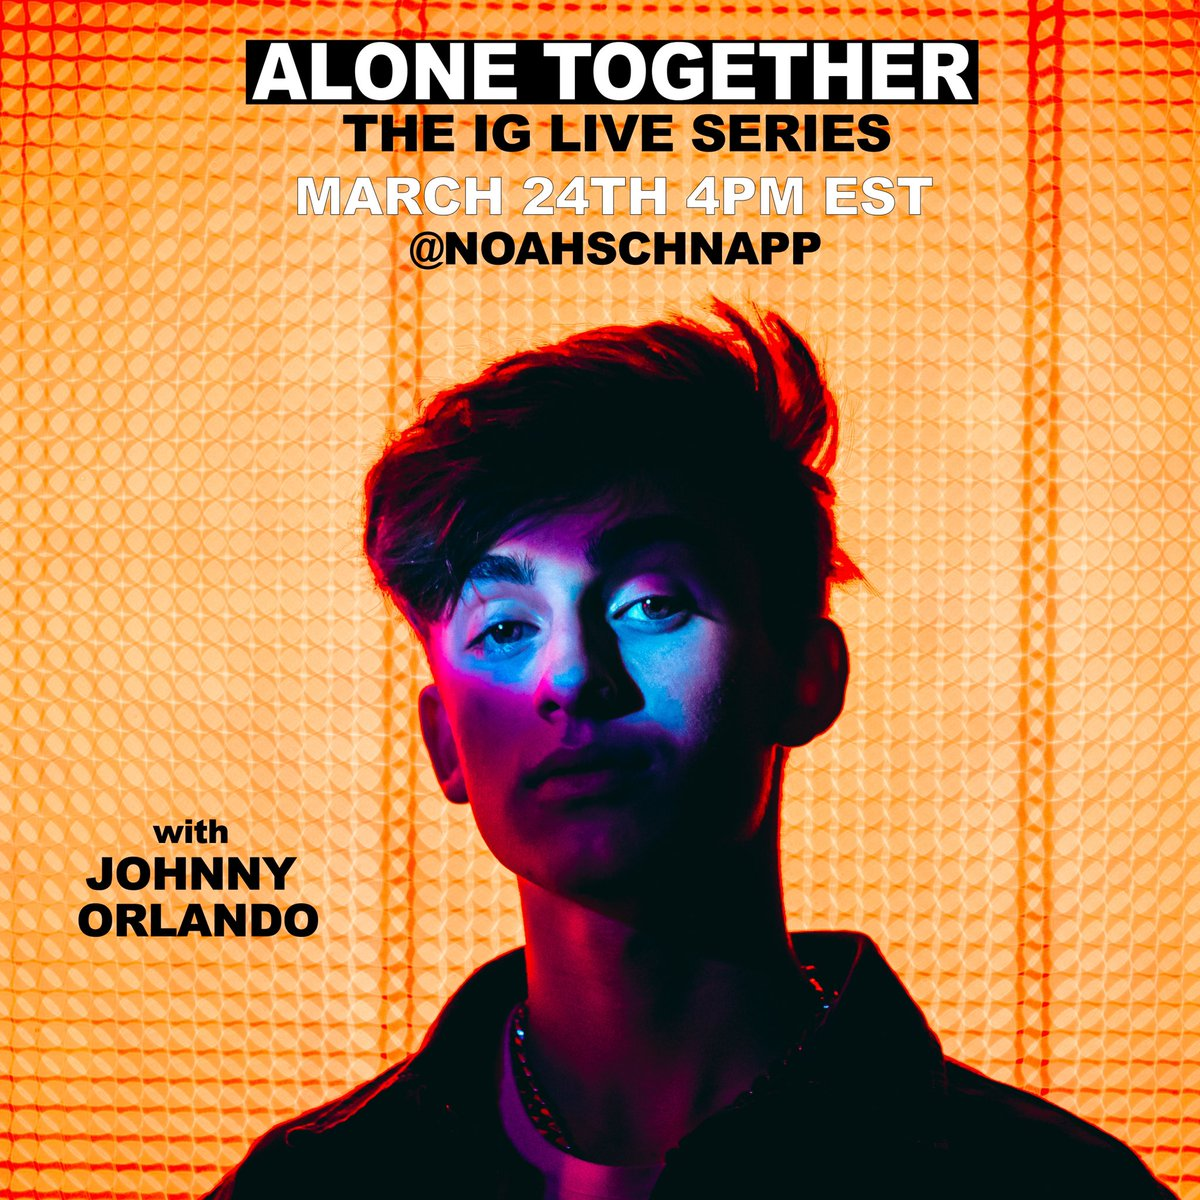 new #AloneTogether today at 4est with @noah_schnapp!! drop some questions for noah👇🏻